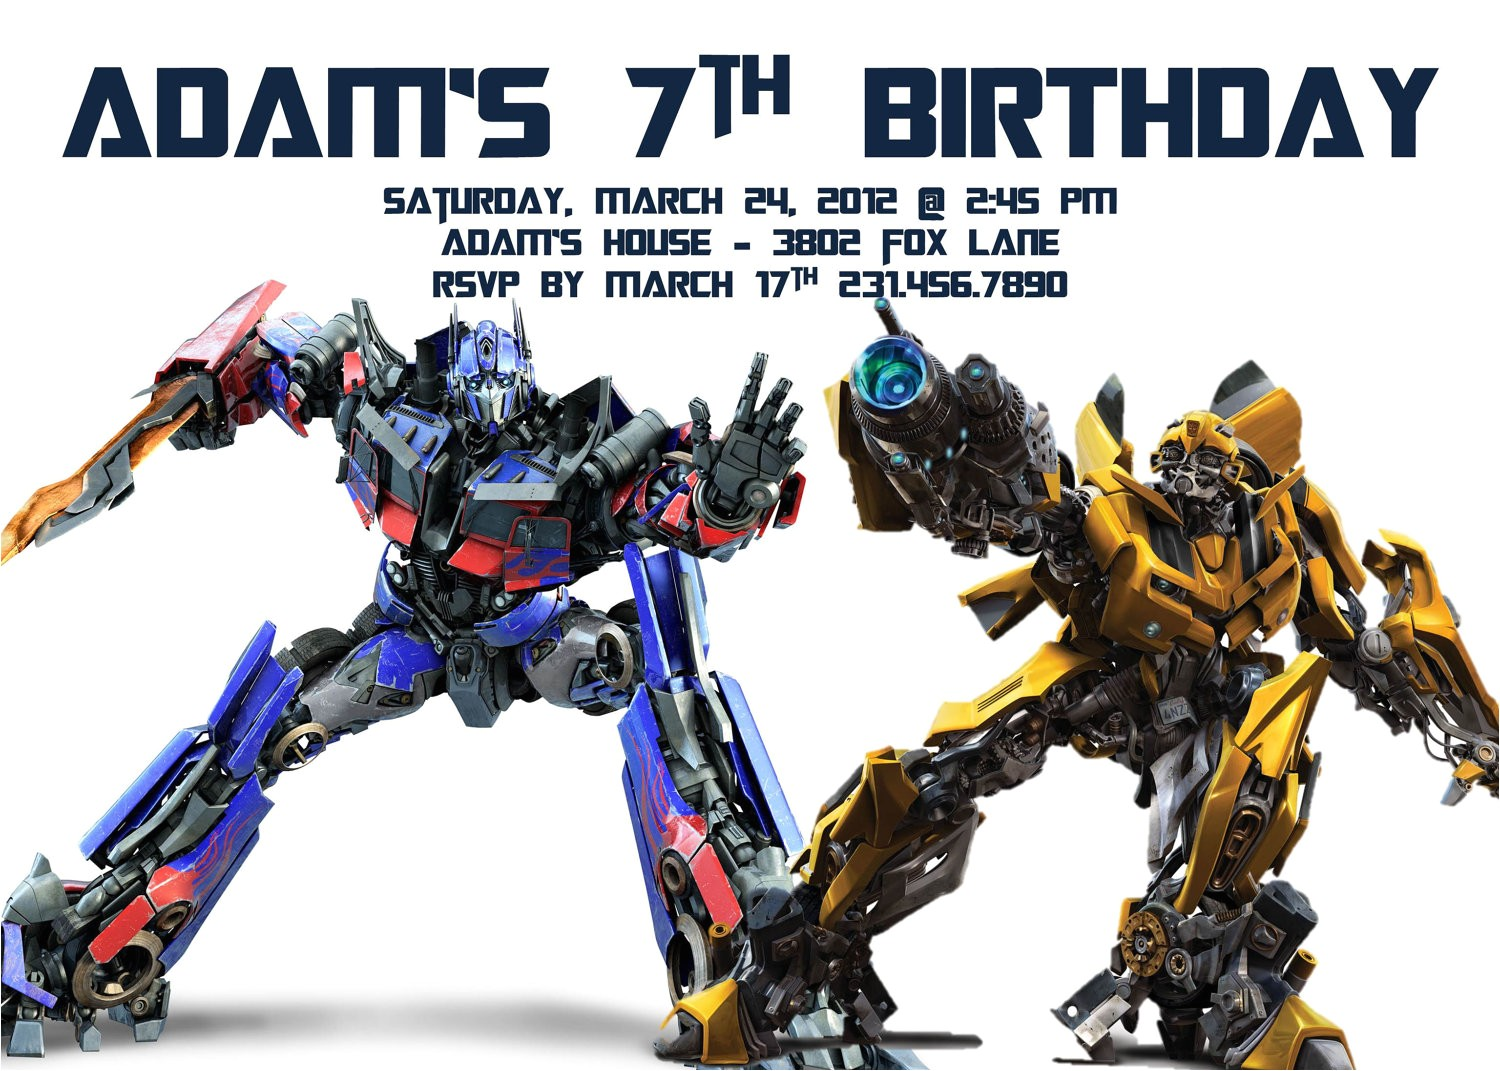 Transformers Birthday Party Invitations Template Transformer Birthday Invitations – Bagvania Free Printable